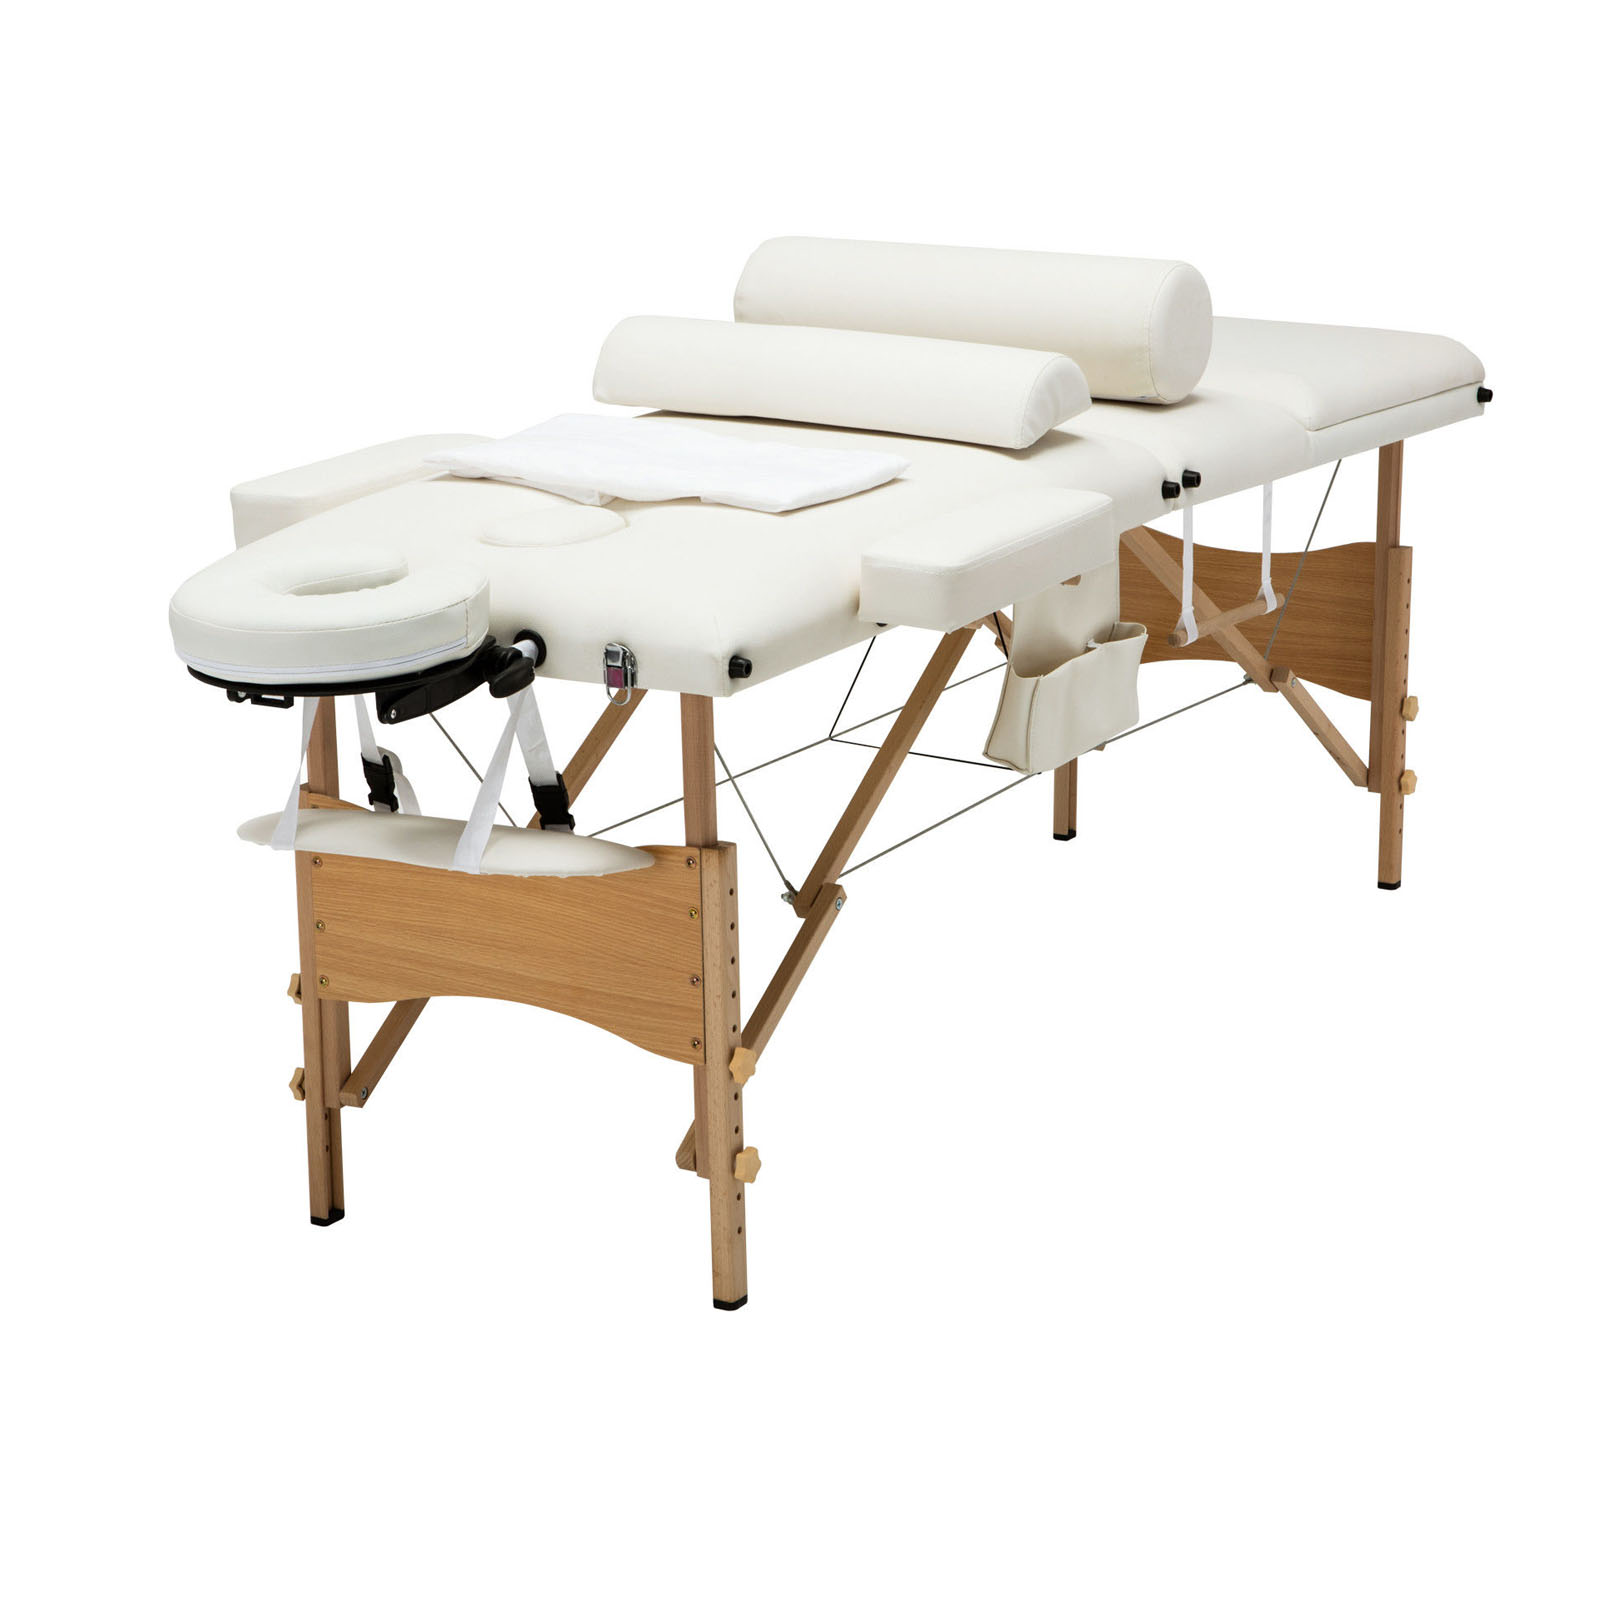 """Zimtown 84""""L x 27""""W All inclusive Massage Table, 3 Section Portable Folding Massage Bed Therapy Equipment for Salon Bodybuilding Beauty, with Table Sheet, 2 Bolsters, Cradle Cover and Towel Hanger"""